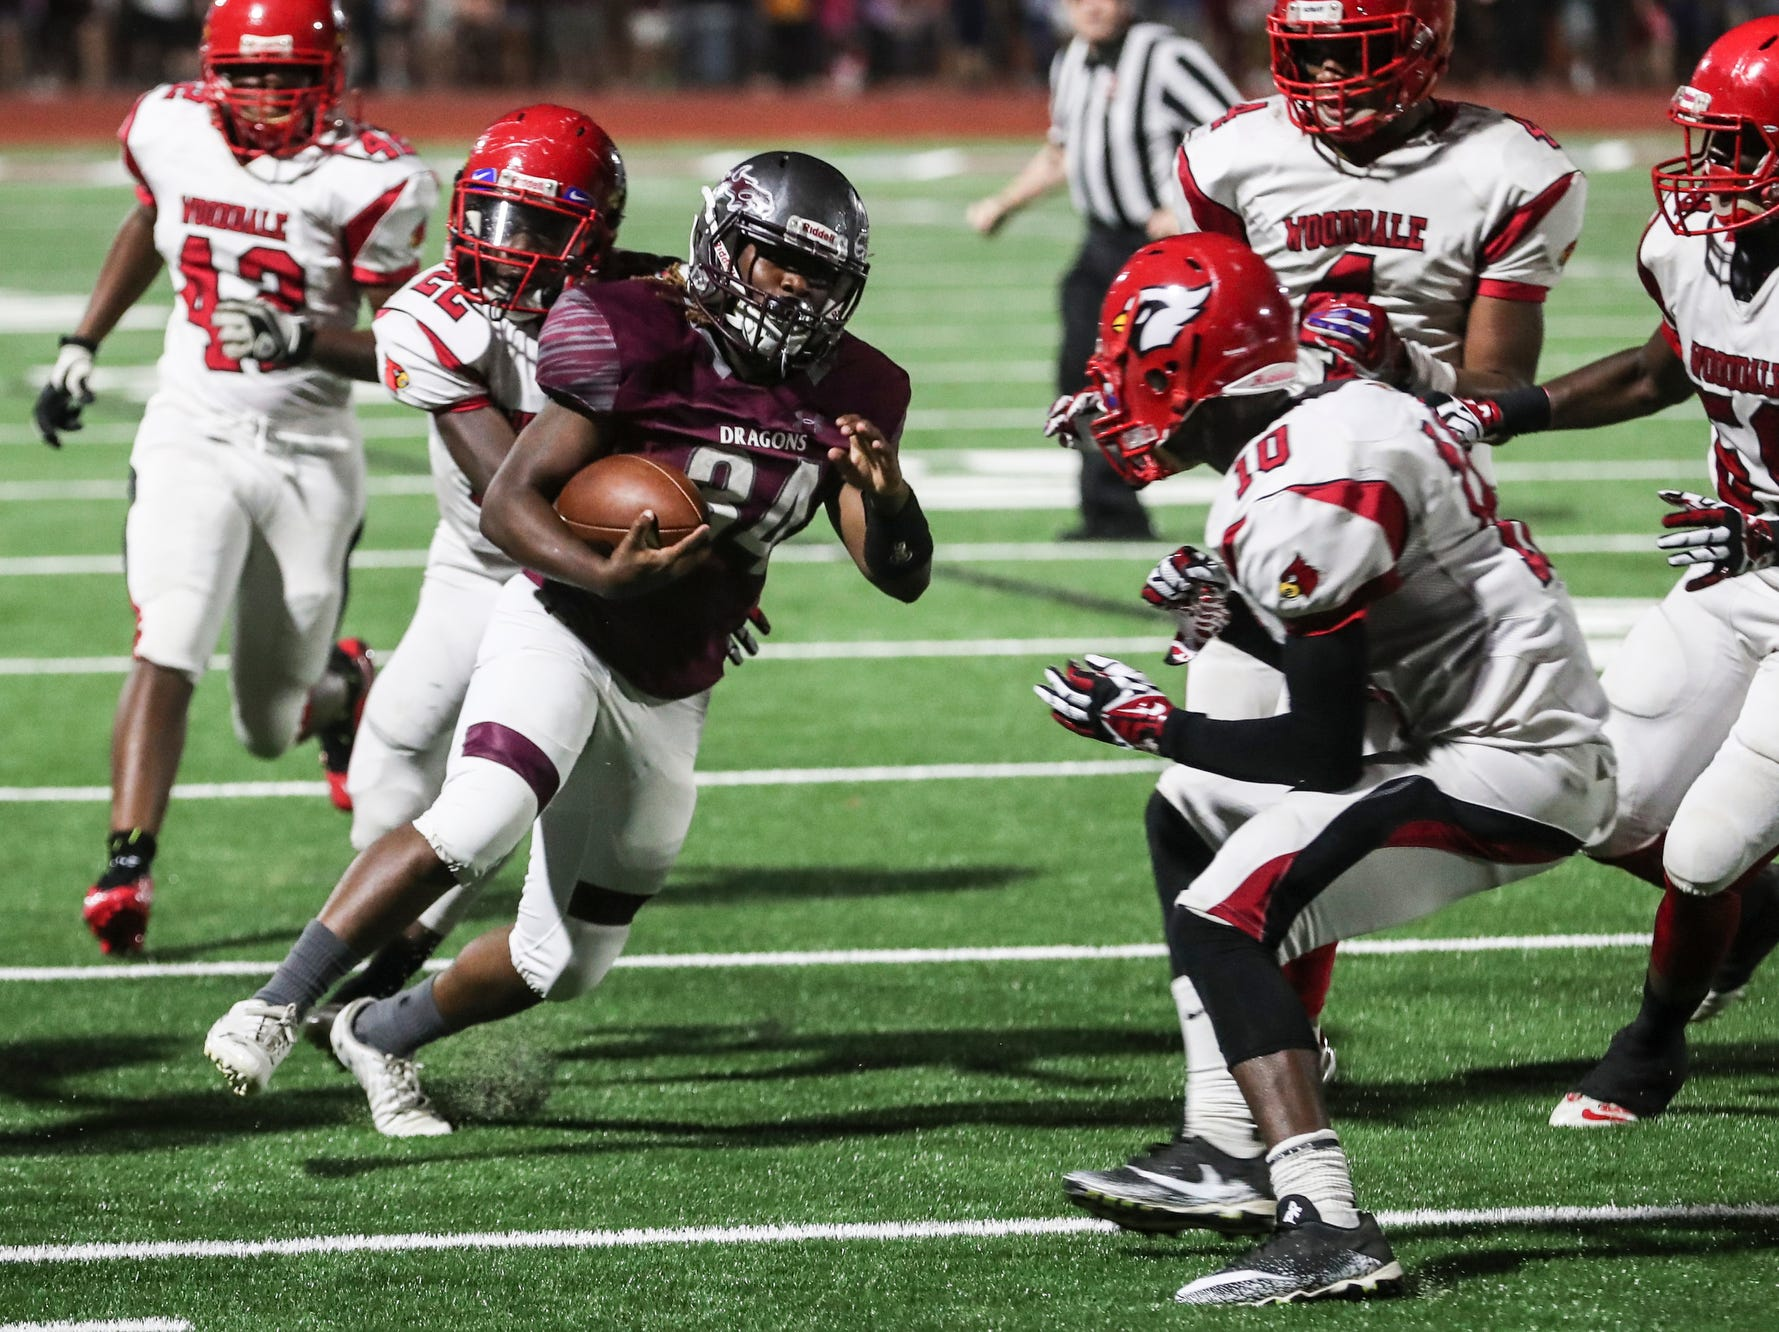 September 21 2018 - Collierville's LaDarin Brown runs with the ball during Friday night's game versus Wooddale at Collierville High School.